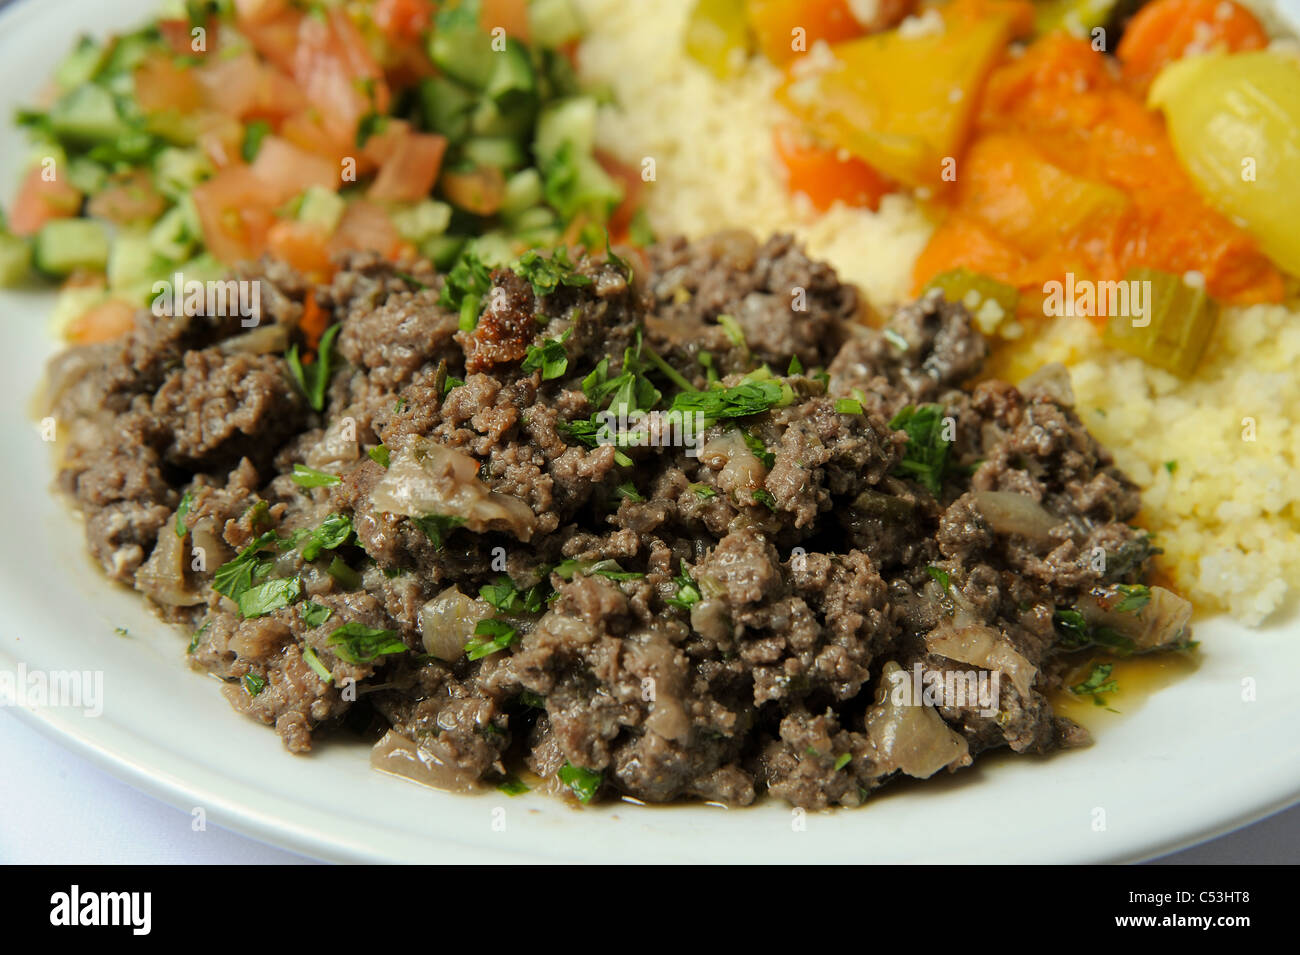 Couscous with vegetables and lamb - Stock Image